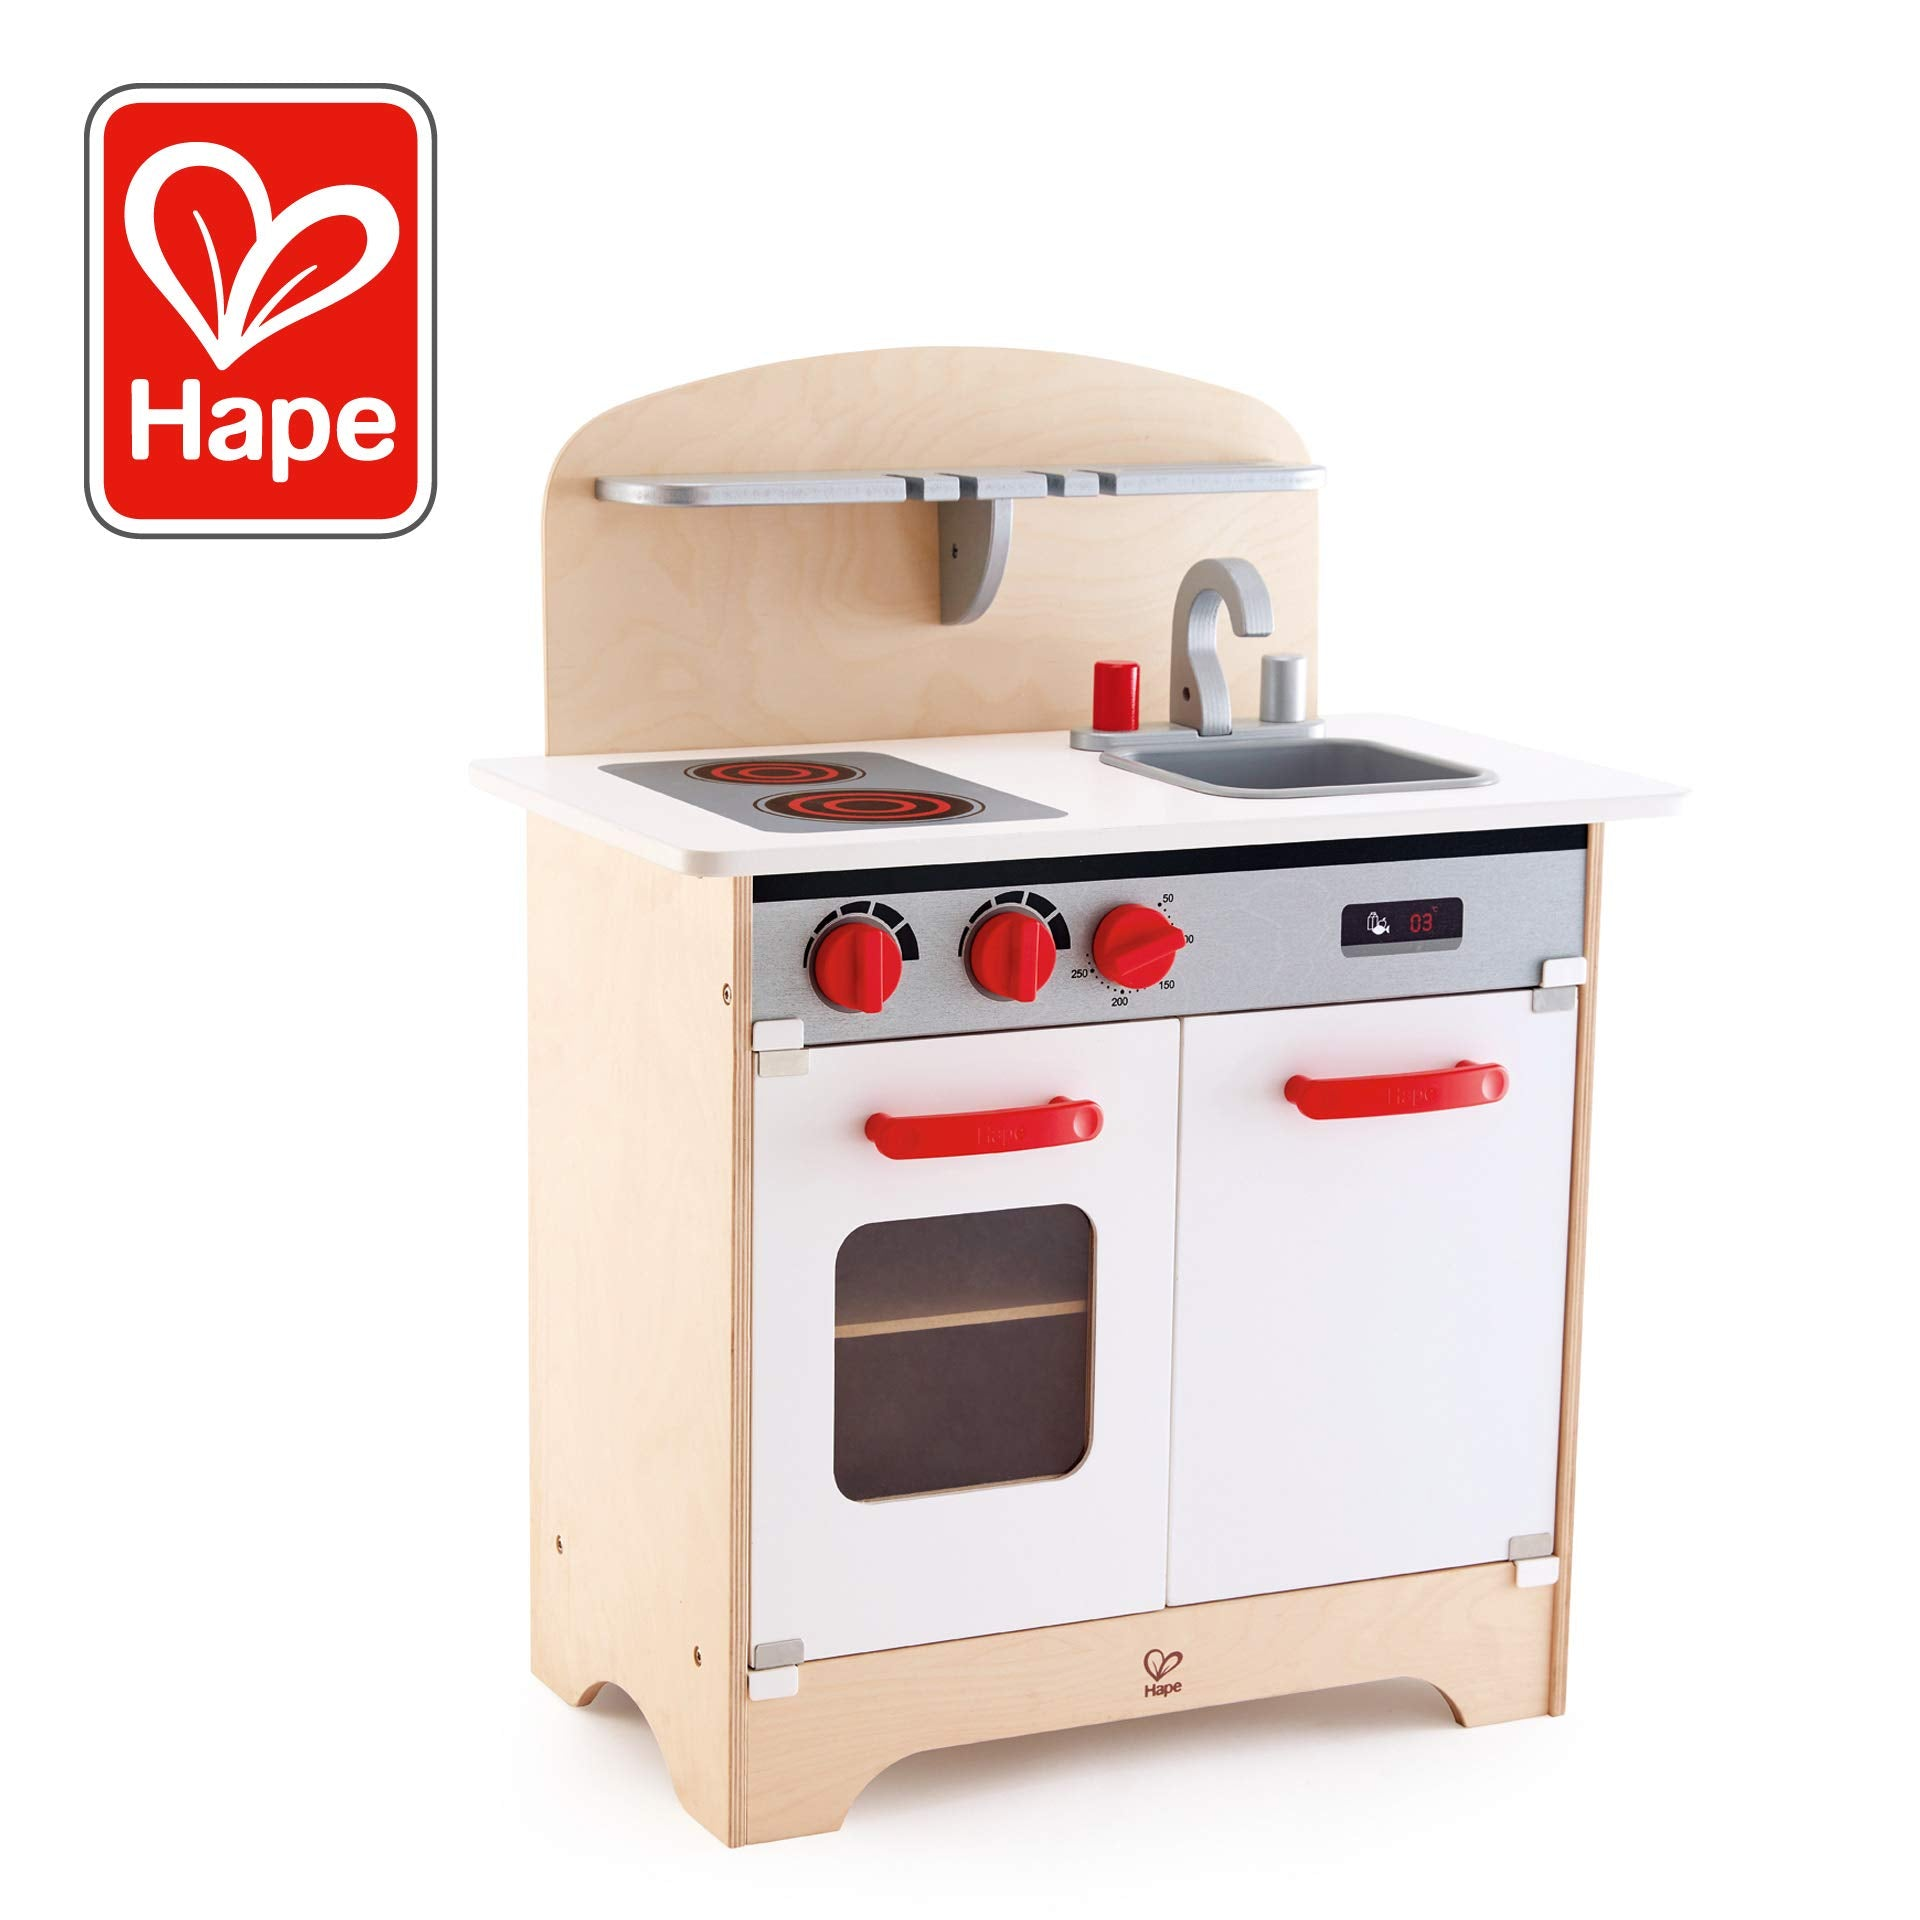 Hape Gourmet Kitchen Toy Fully Equipped Wooden Pretend Play Kitchen Set with Sink, Stove, Baking Oven, Cabinet, Turnable Knobs & Spice Shelf, White